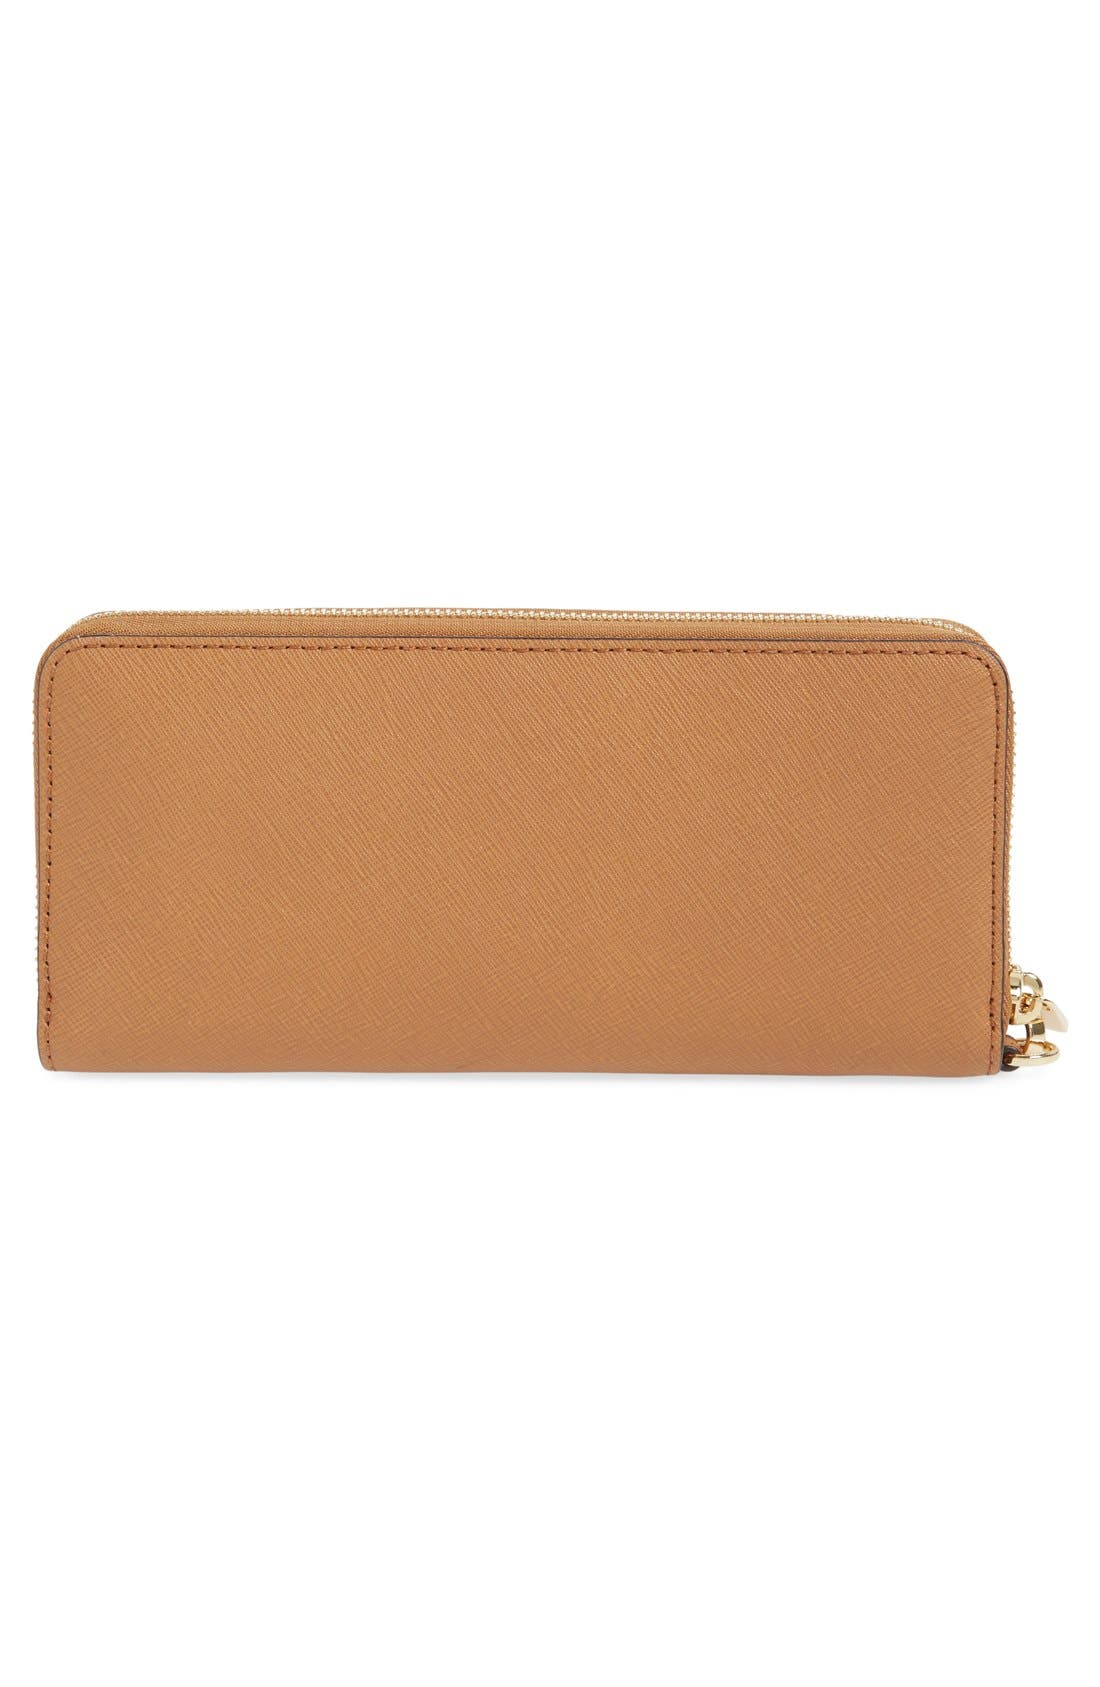 'Jet Set' Leather Travel Wallet,                             Alternate thumbnail 37, color,